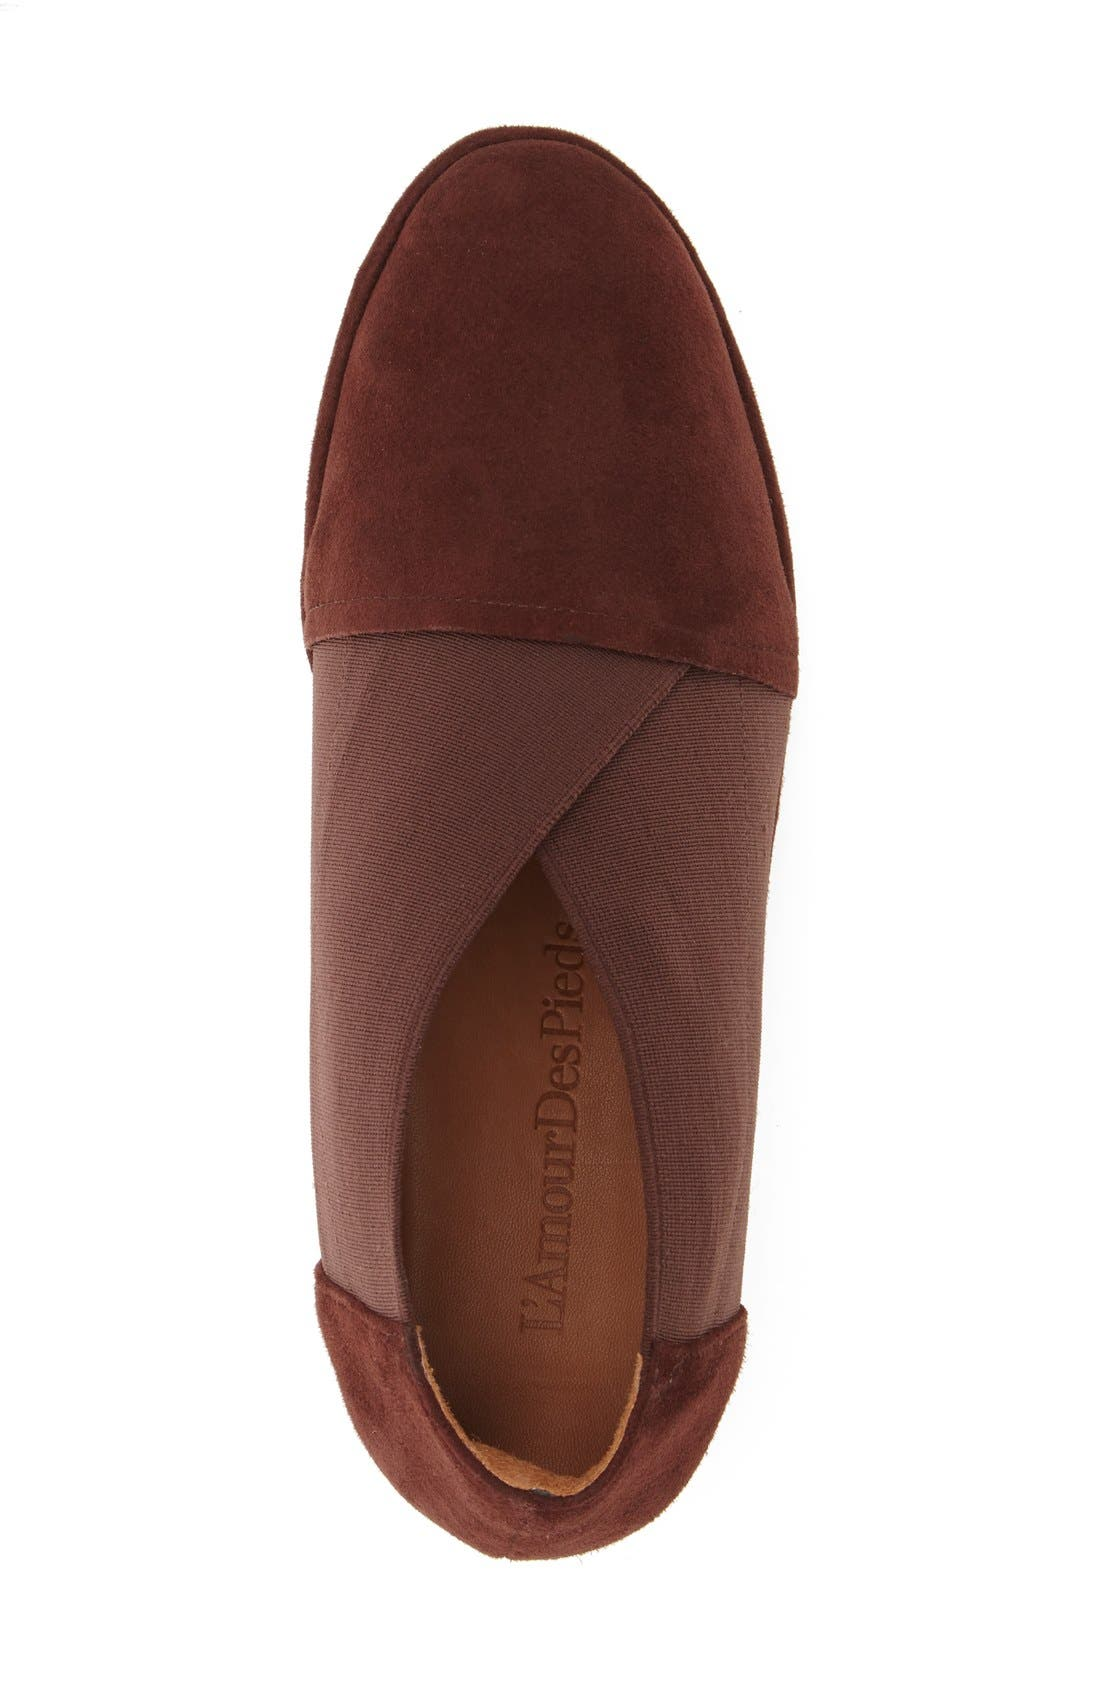 'Bowden' Slip-On Wedge,                             Alternate thumbnail 3, color,                             Espresso Suede Leather